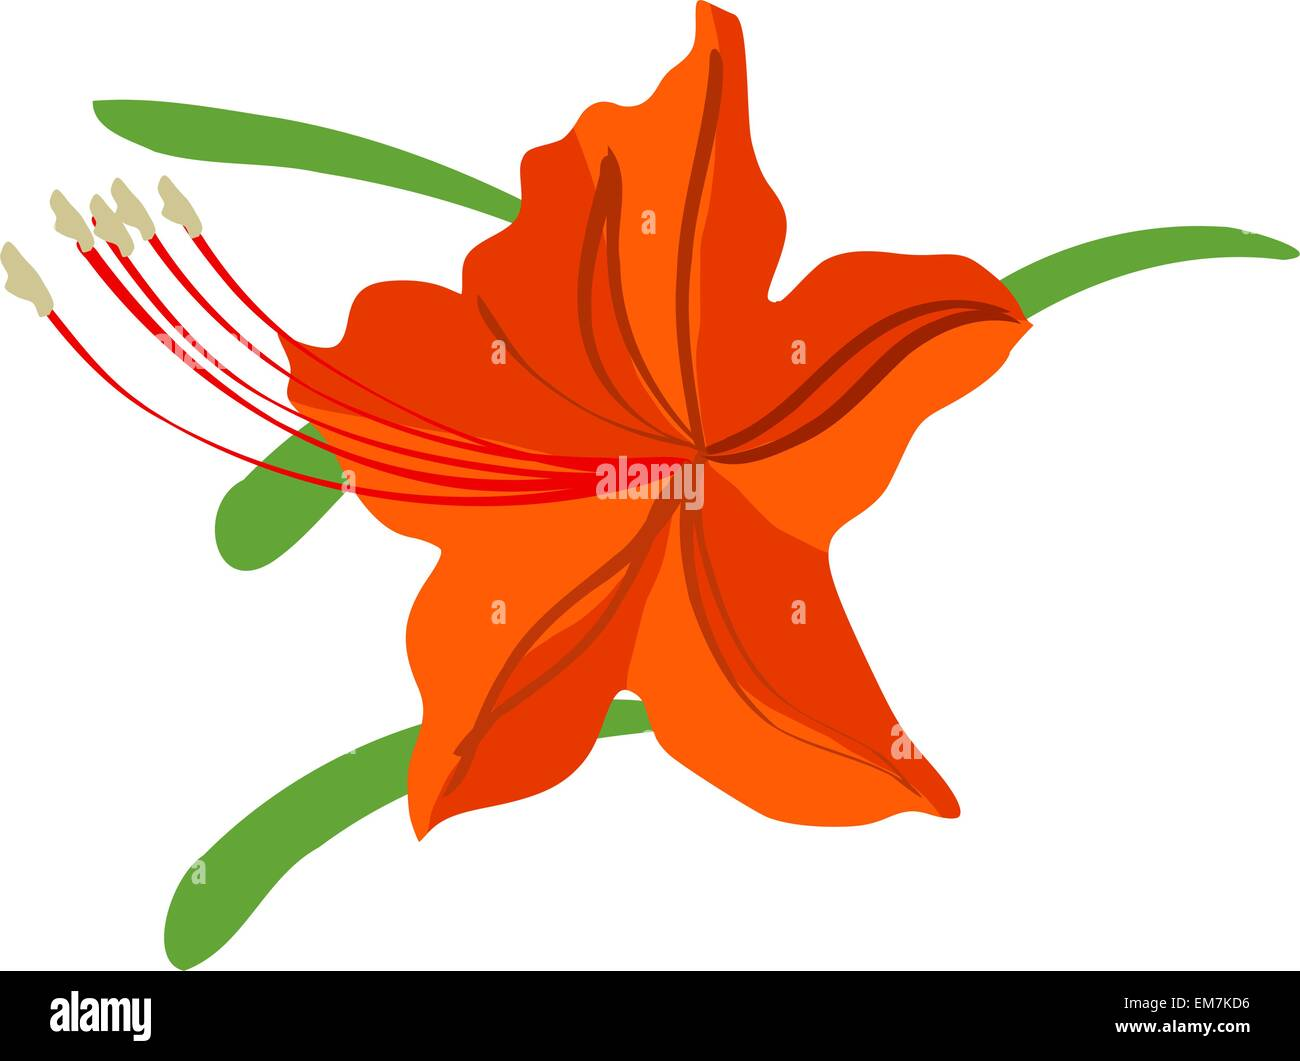 Rhododendron - Stock Vector